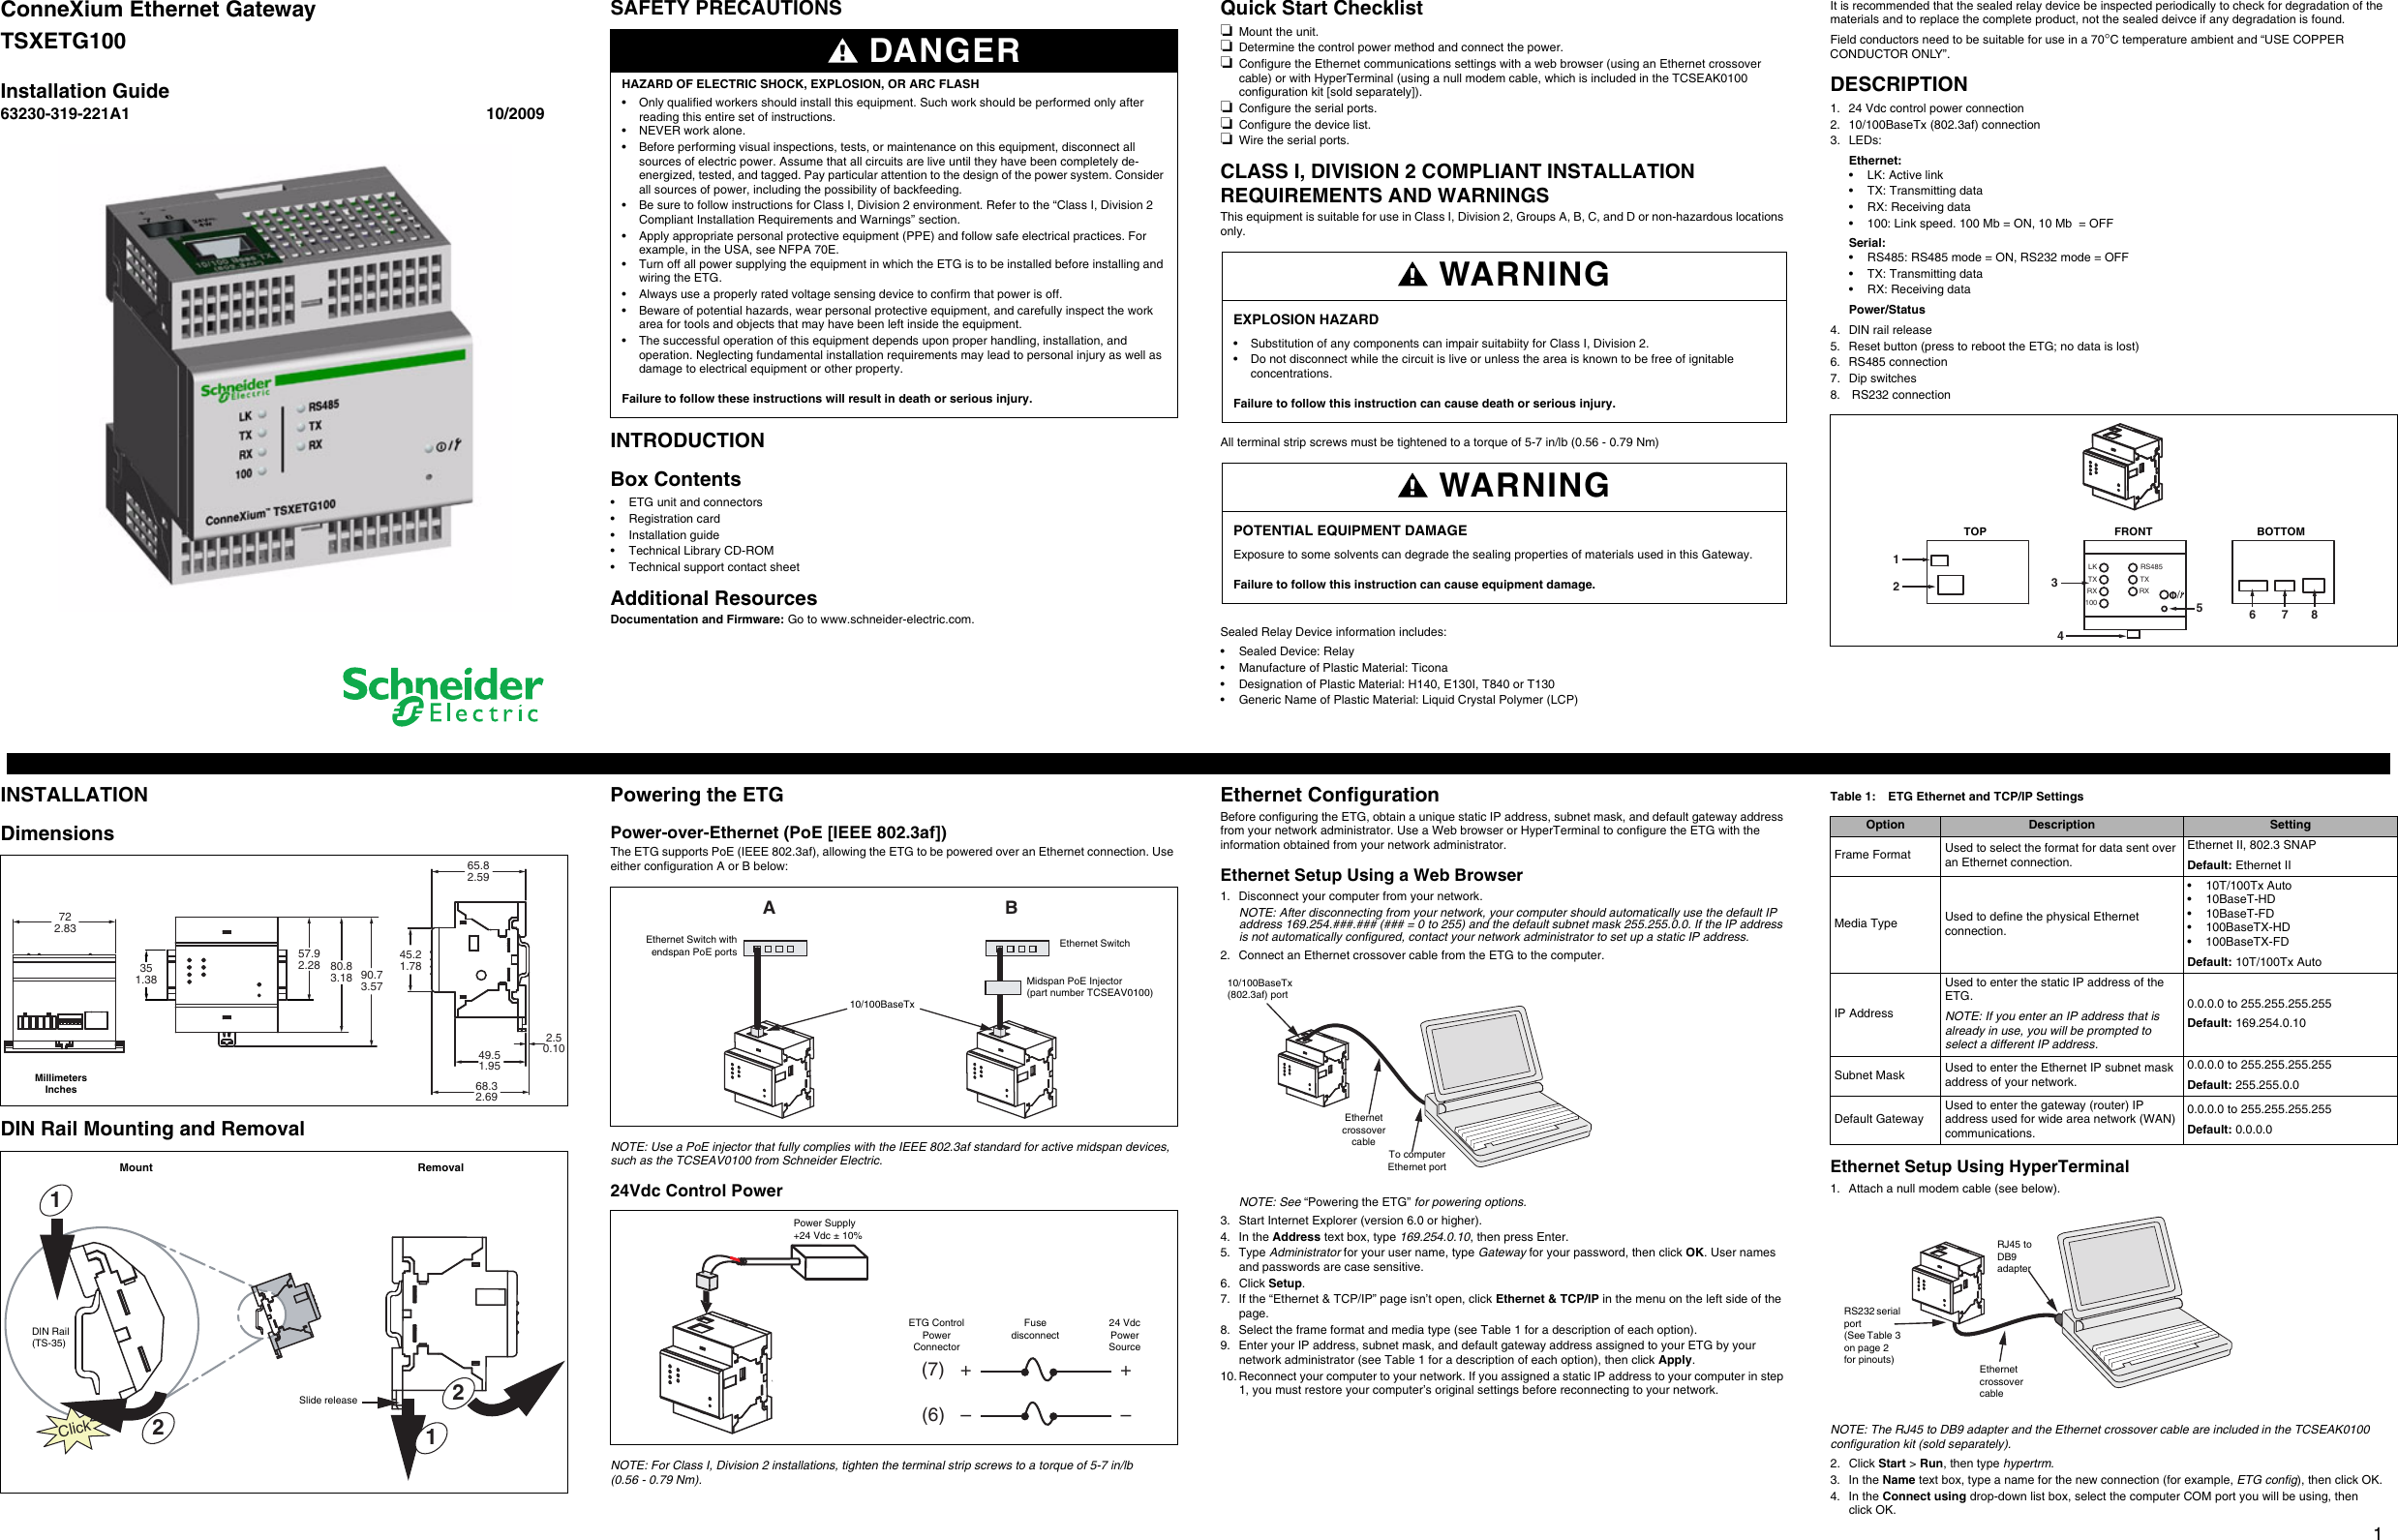 schneider electric connexium ethernet gateway tsxetg100 users manual installation guide eng